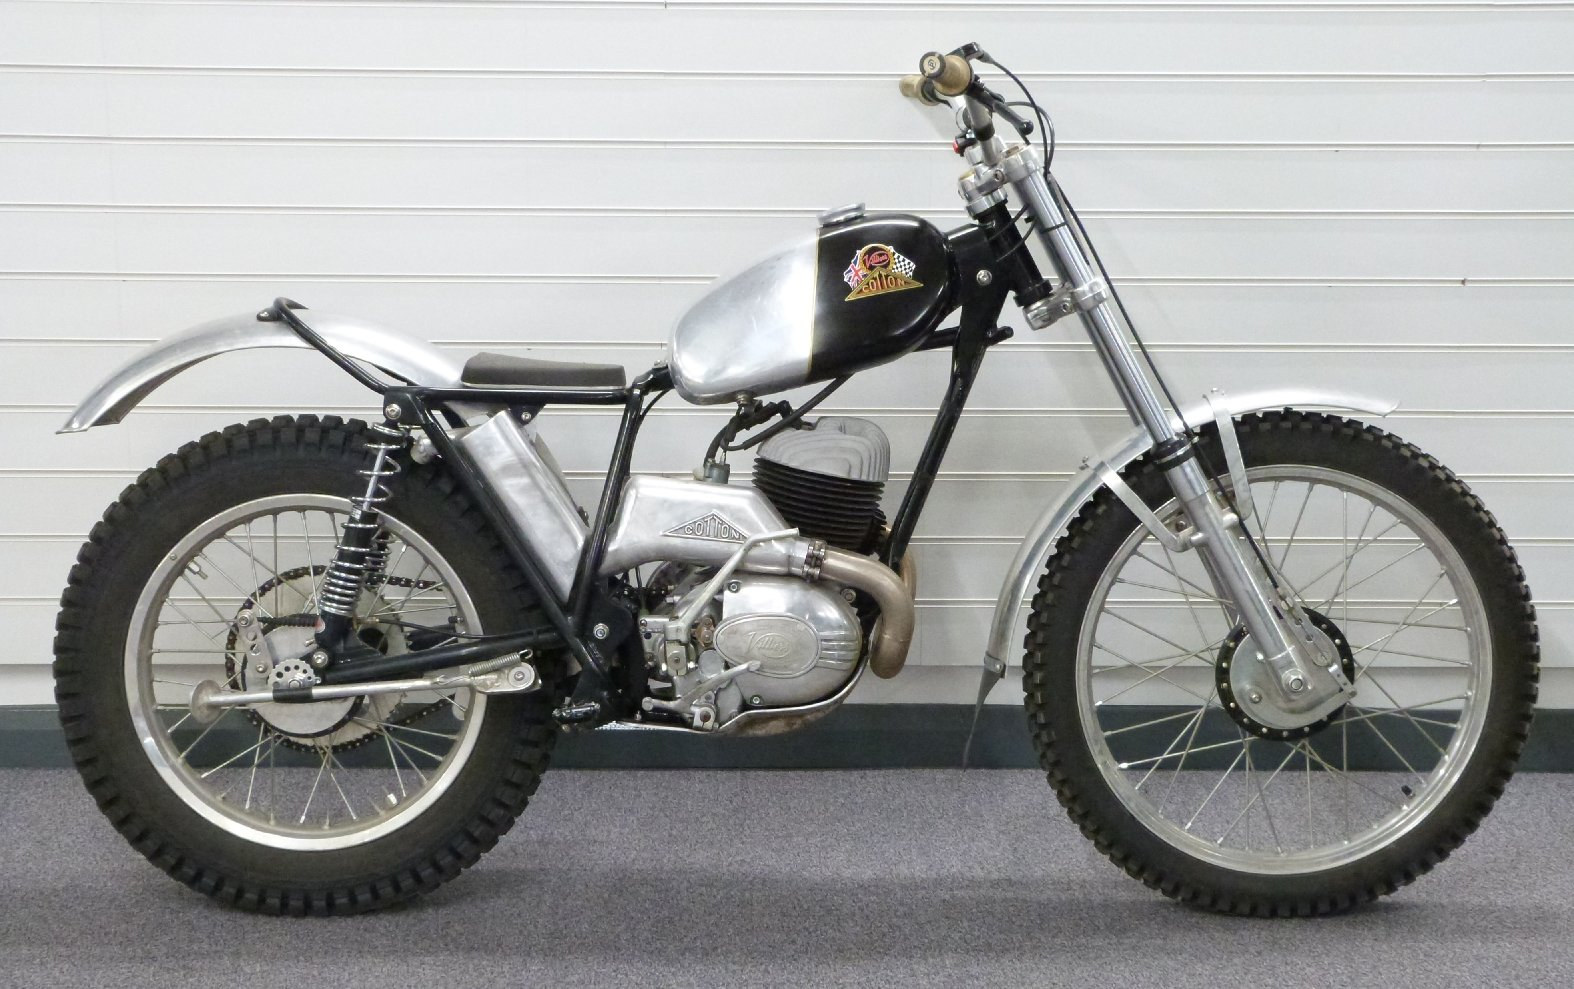 1969 Cotton 37A lightweight 250cc trials bike For Sale by Auction (picture 1 of 5)